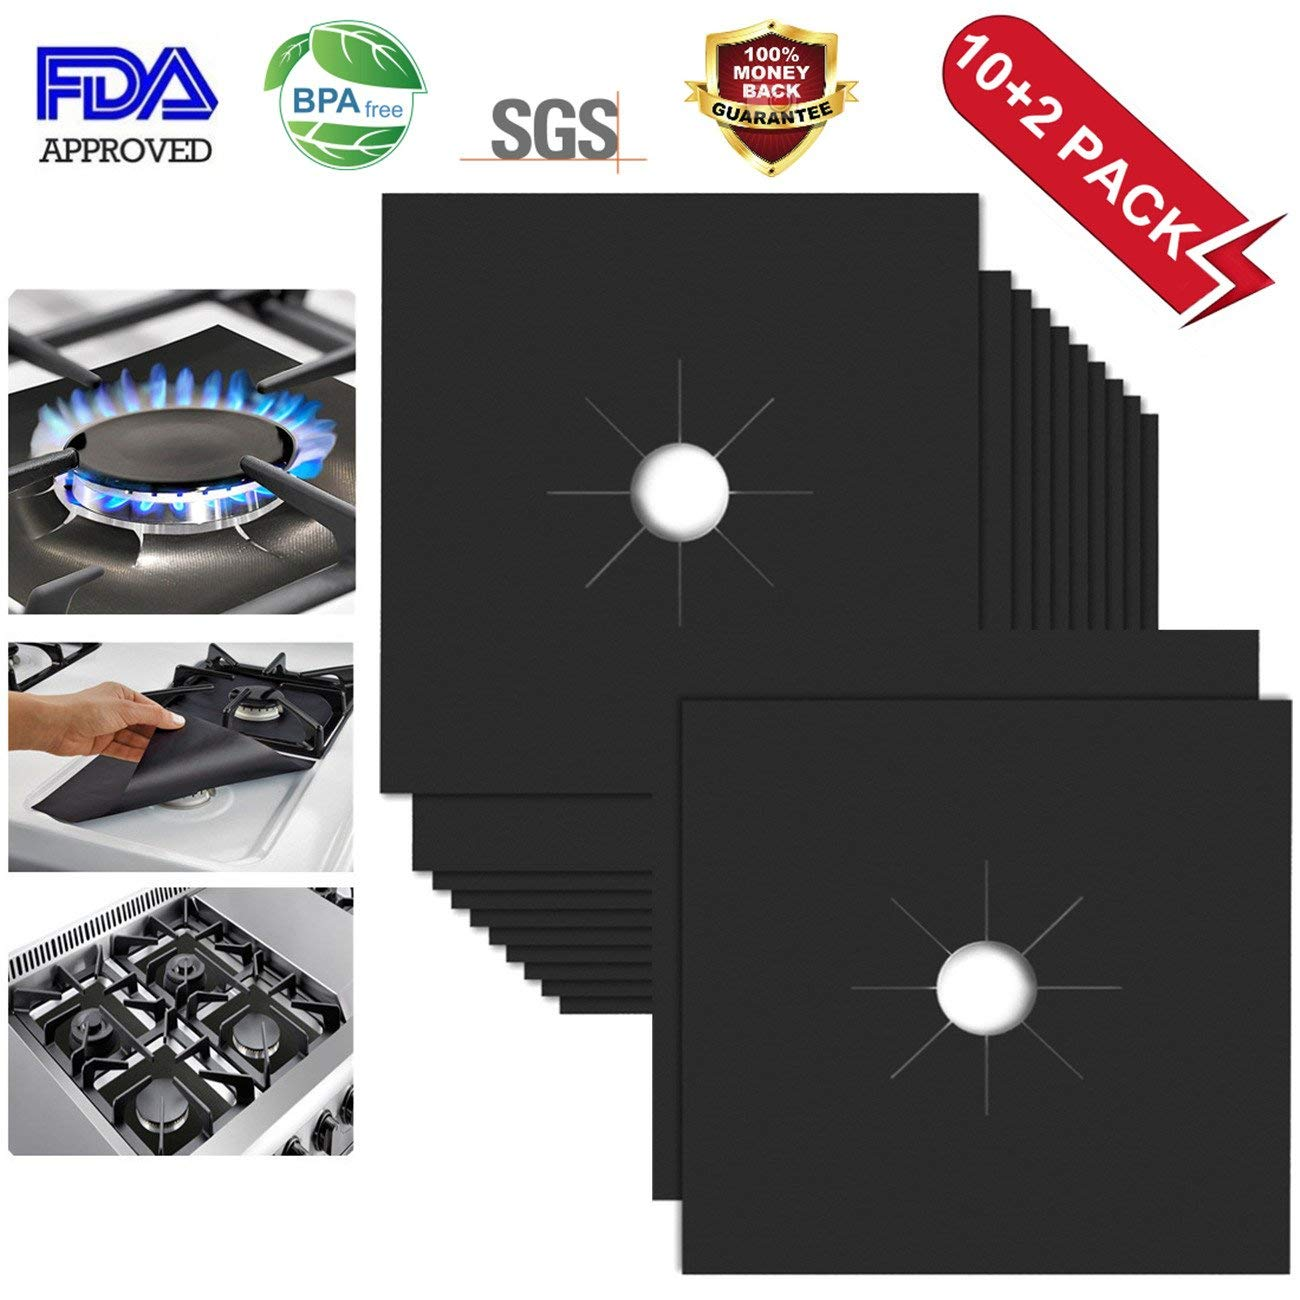 Stove Top Covers for Gas Burners Stove Top Protector for Gas Burners Gas Stove Burner Covers Non-Stick Stovetop Covers for Kitchen- Double Thickness 0.2mm, Cuttable, Dishwasher Safe, Easy to Clean